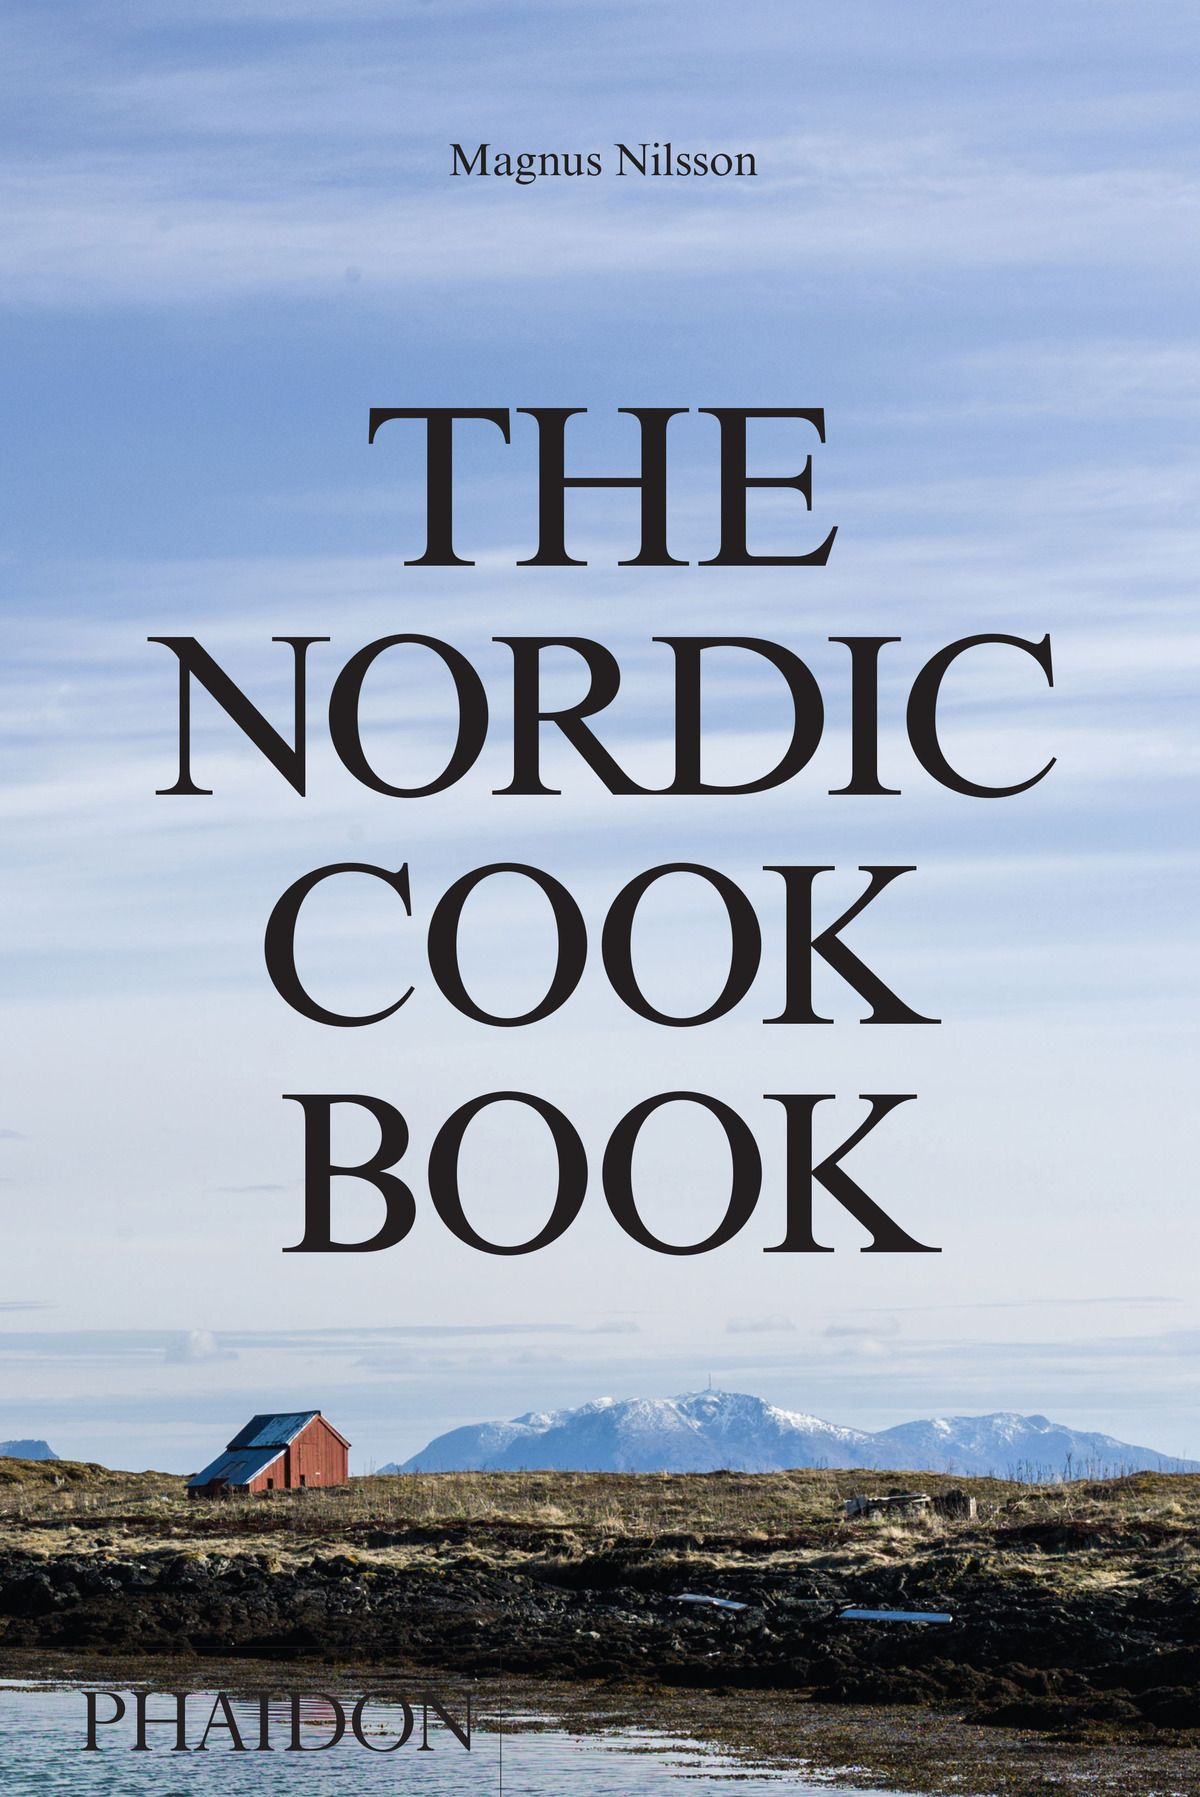 The Definitive Guide To Nordic Cooking In 730 Recipes Magnus Nilsson New Cookbooks Favorite Cookbooks